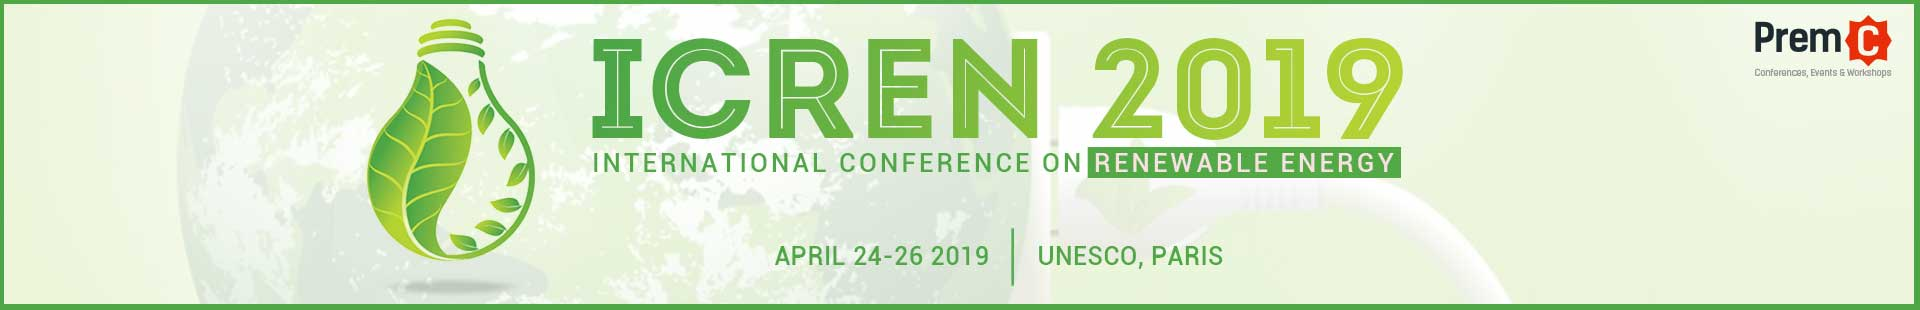 Renewable Energy International Conference Content I PremC